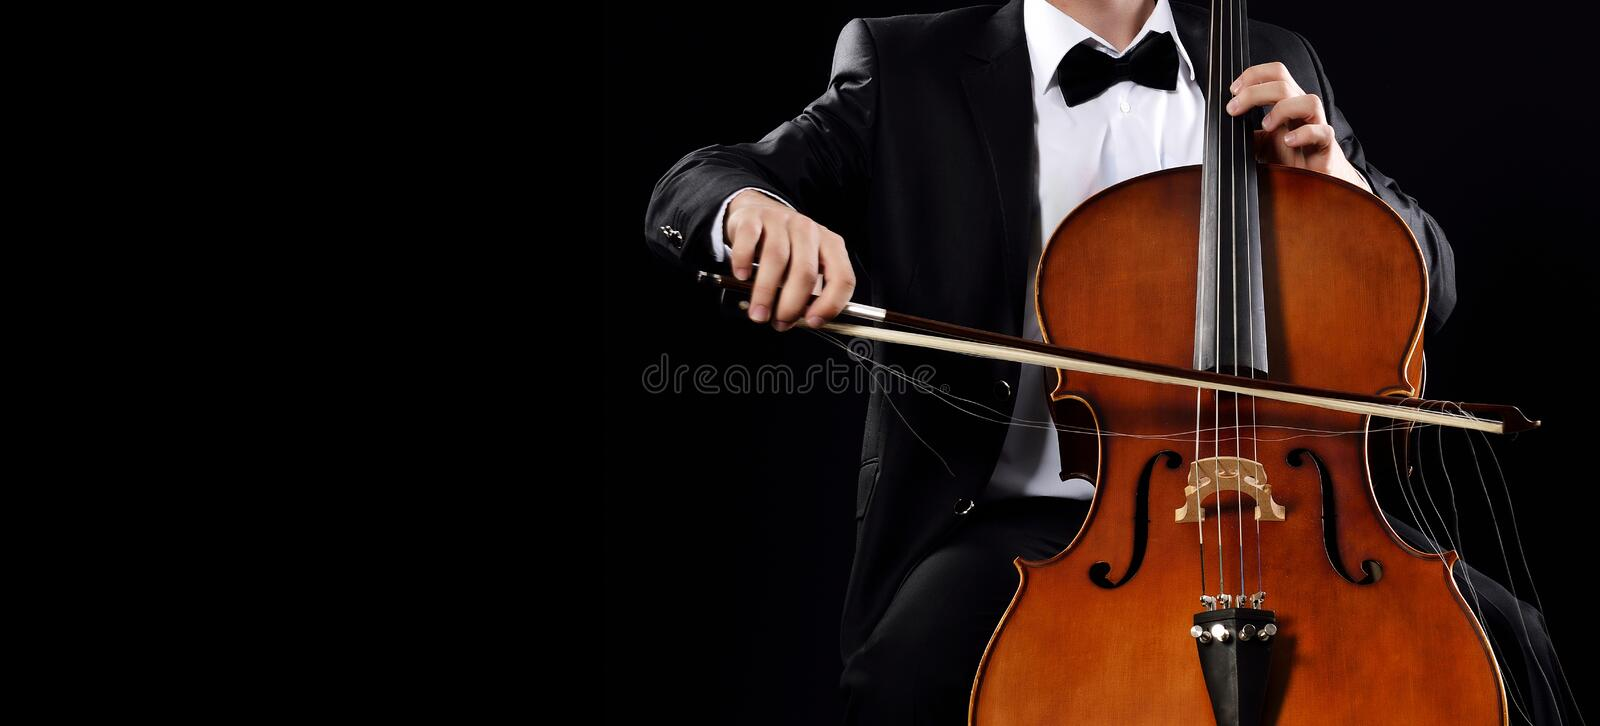 Playing cello stock image